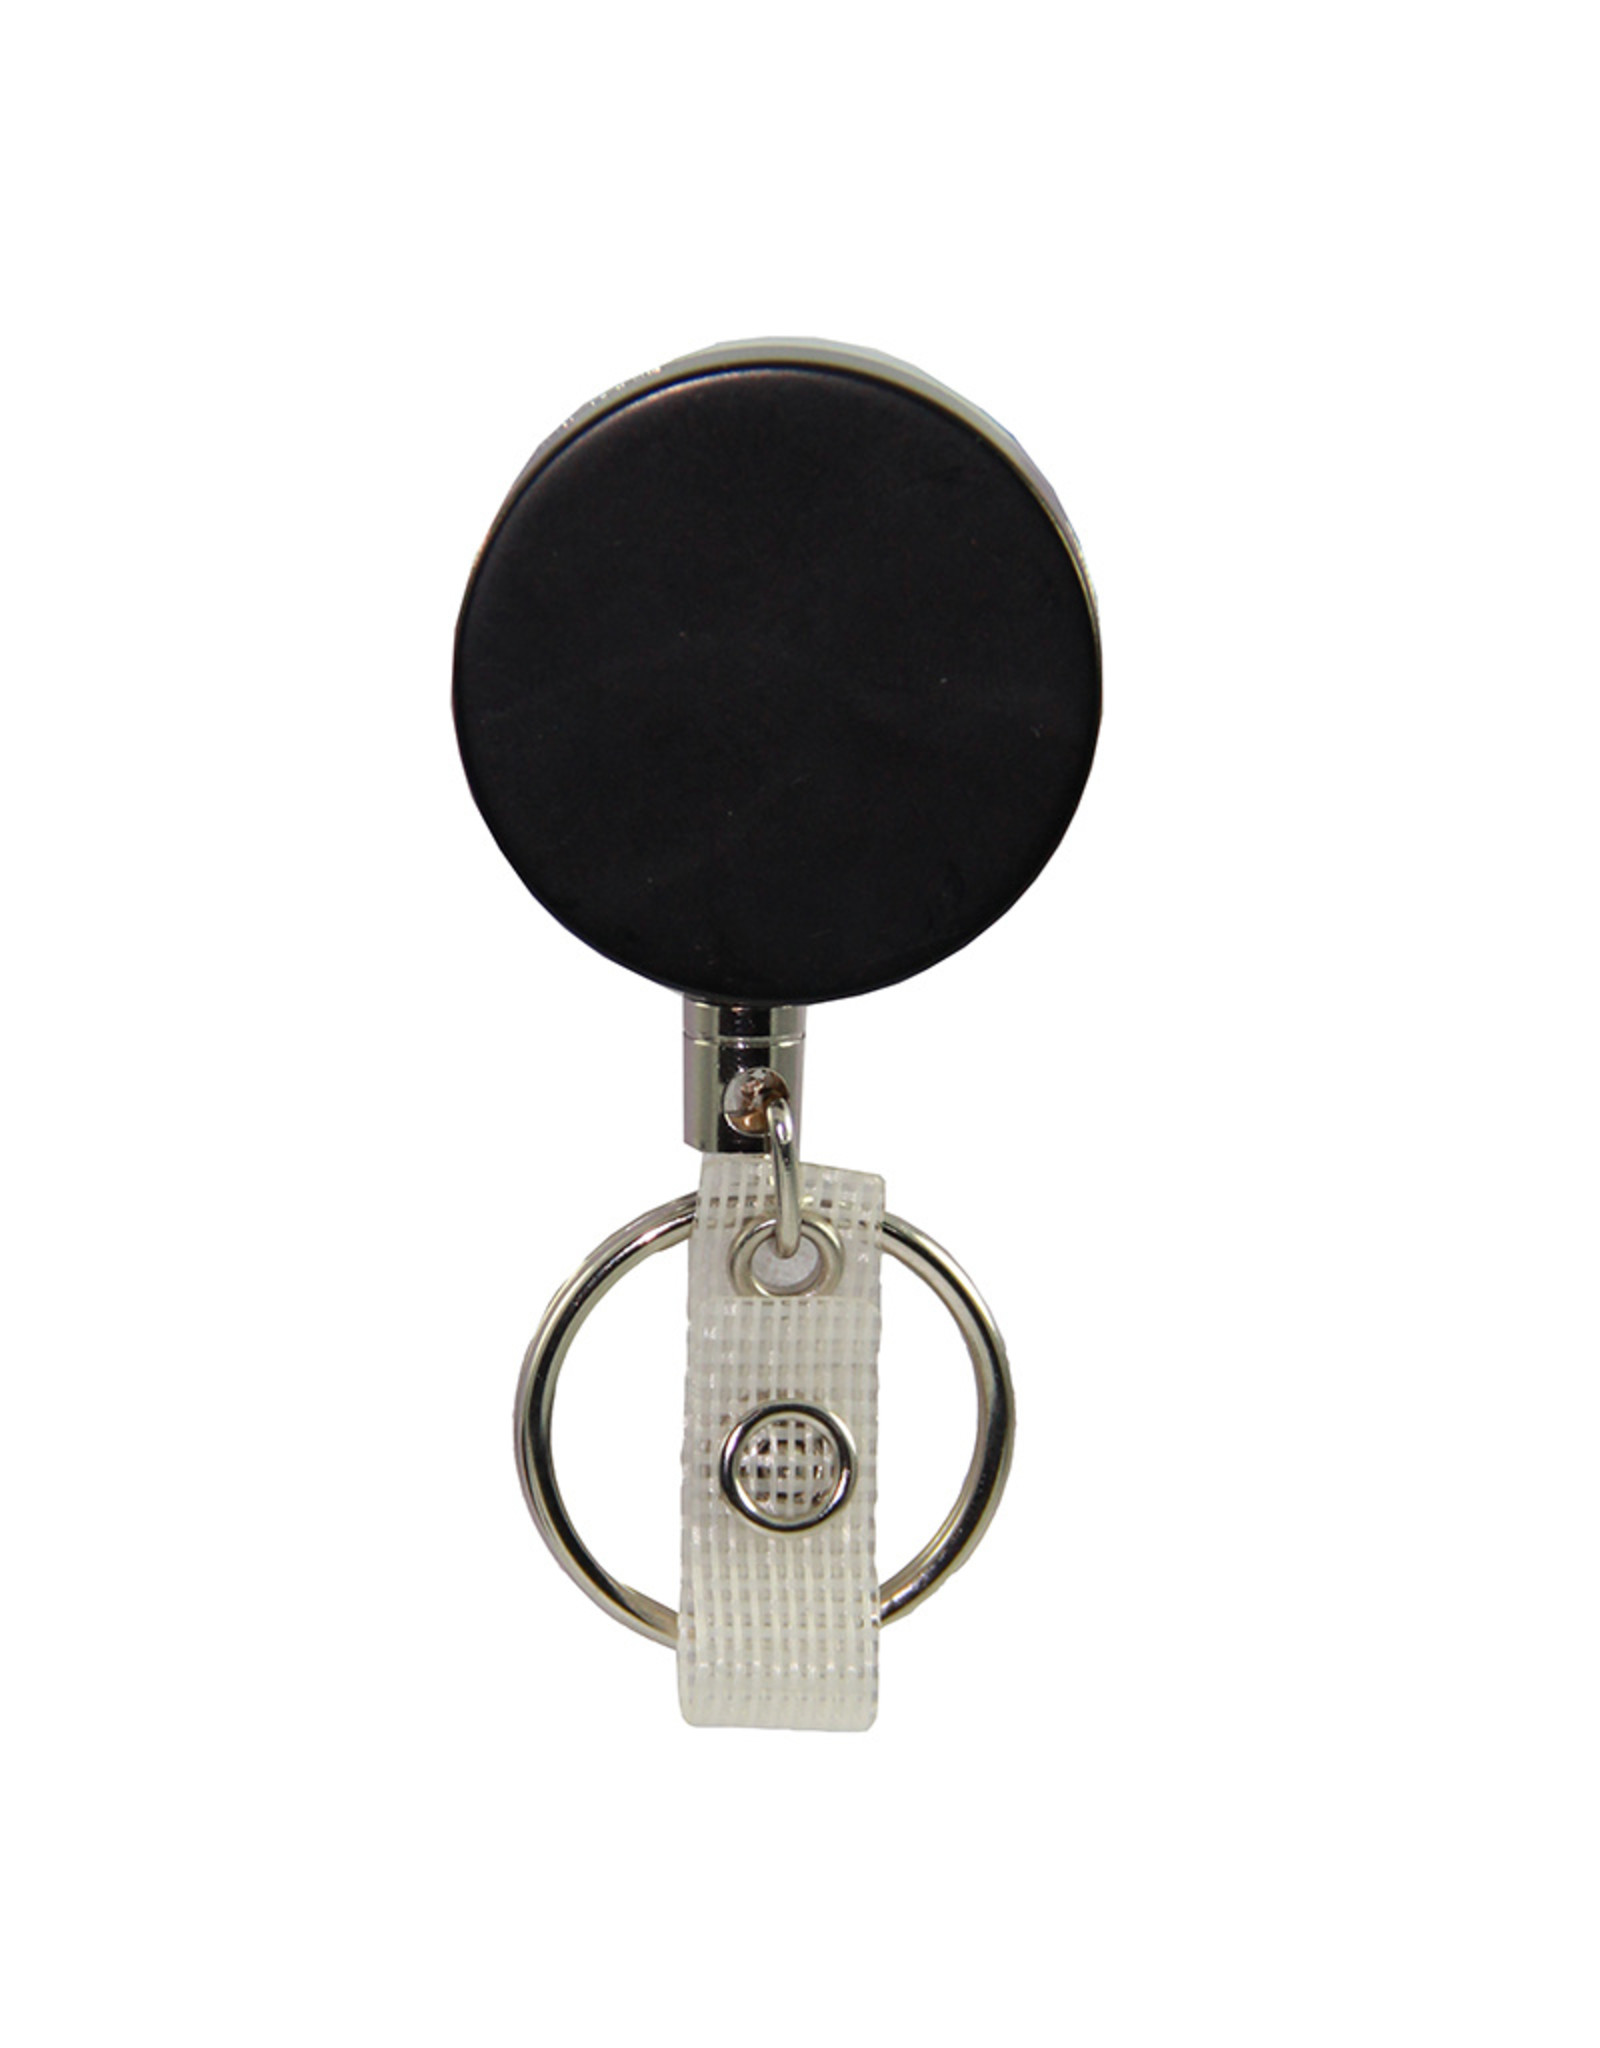 HI-TEC INTERVENTION Retractable Key Ring with Wire Thread